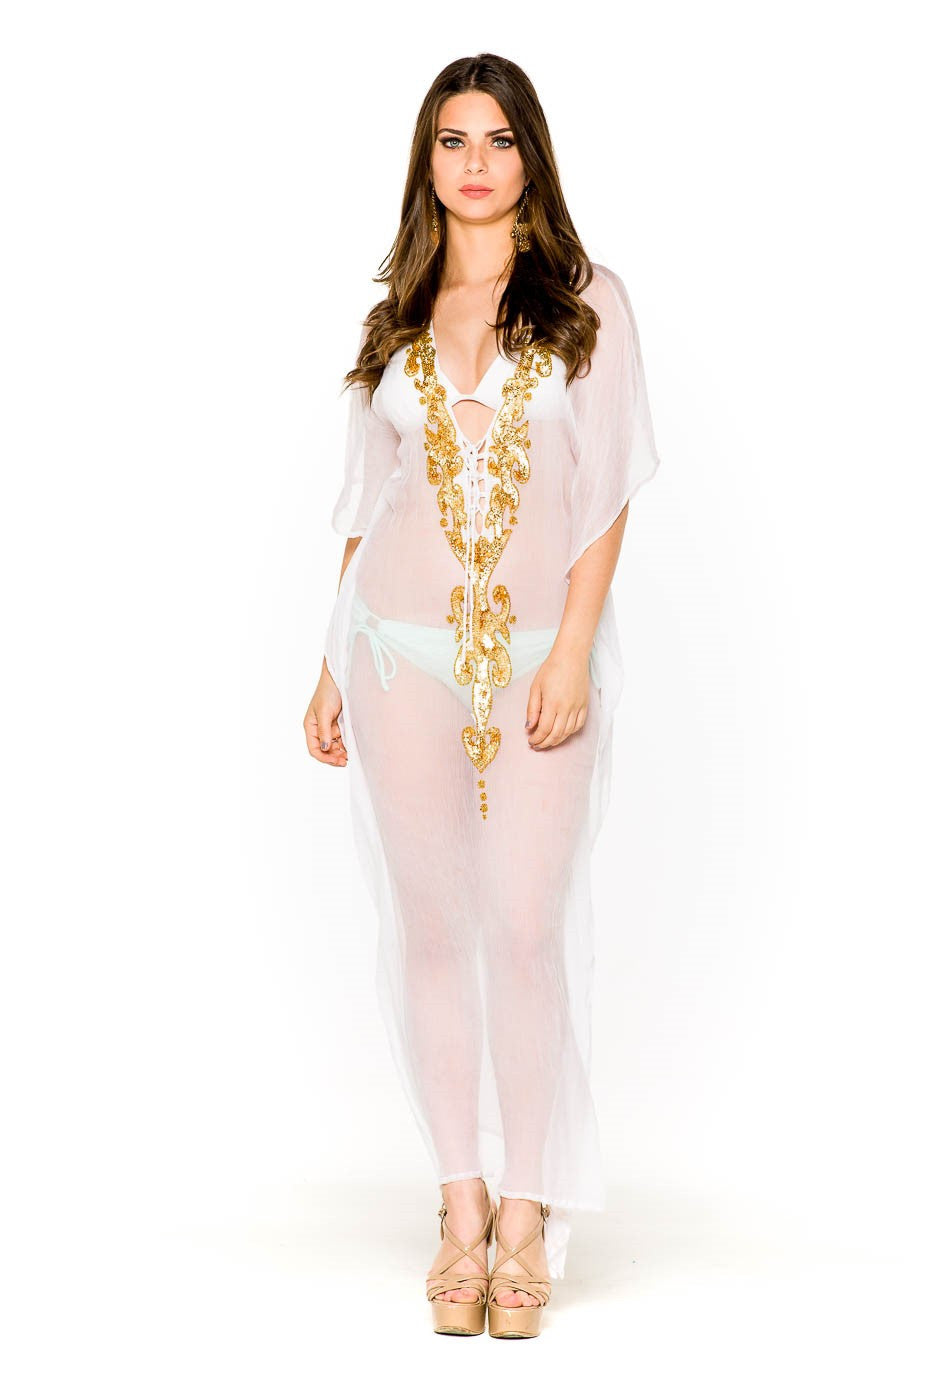 Golden Goddess Gown - SALE - www.LUXEISLE.com